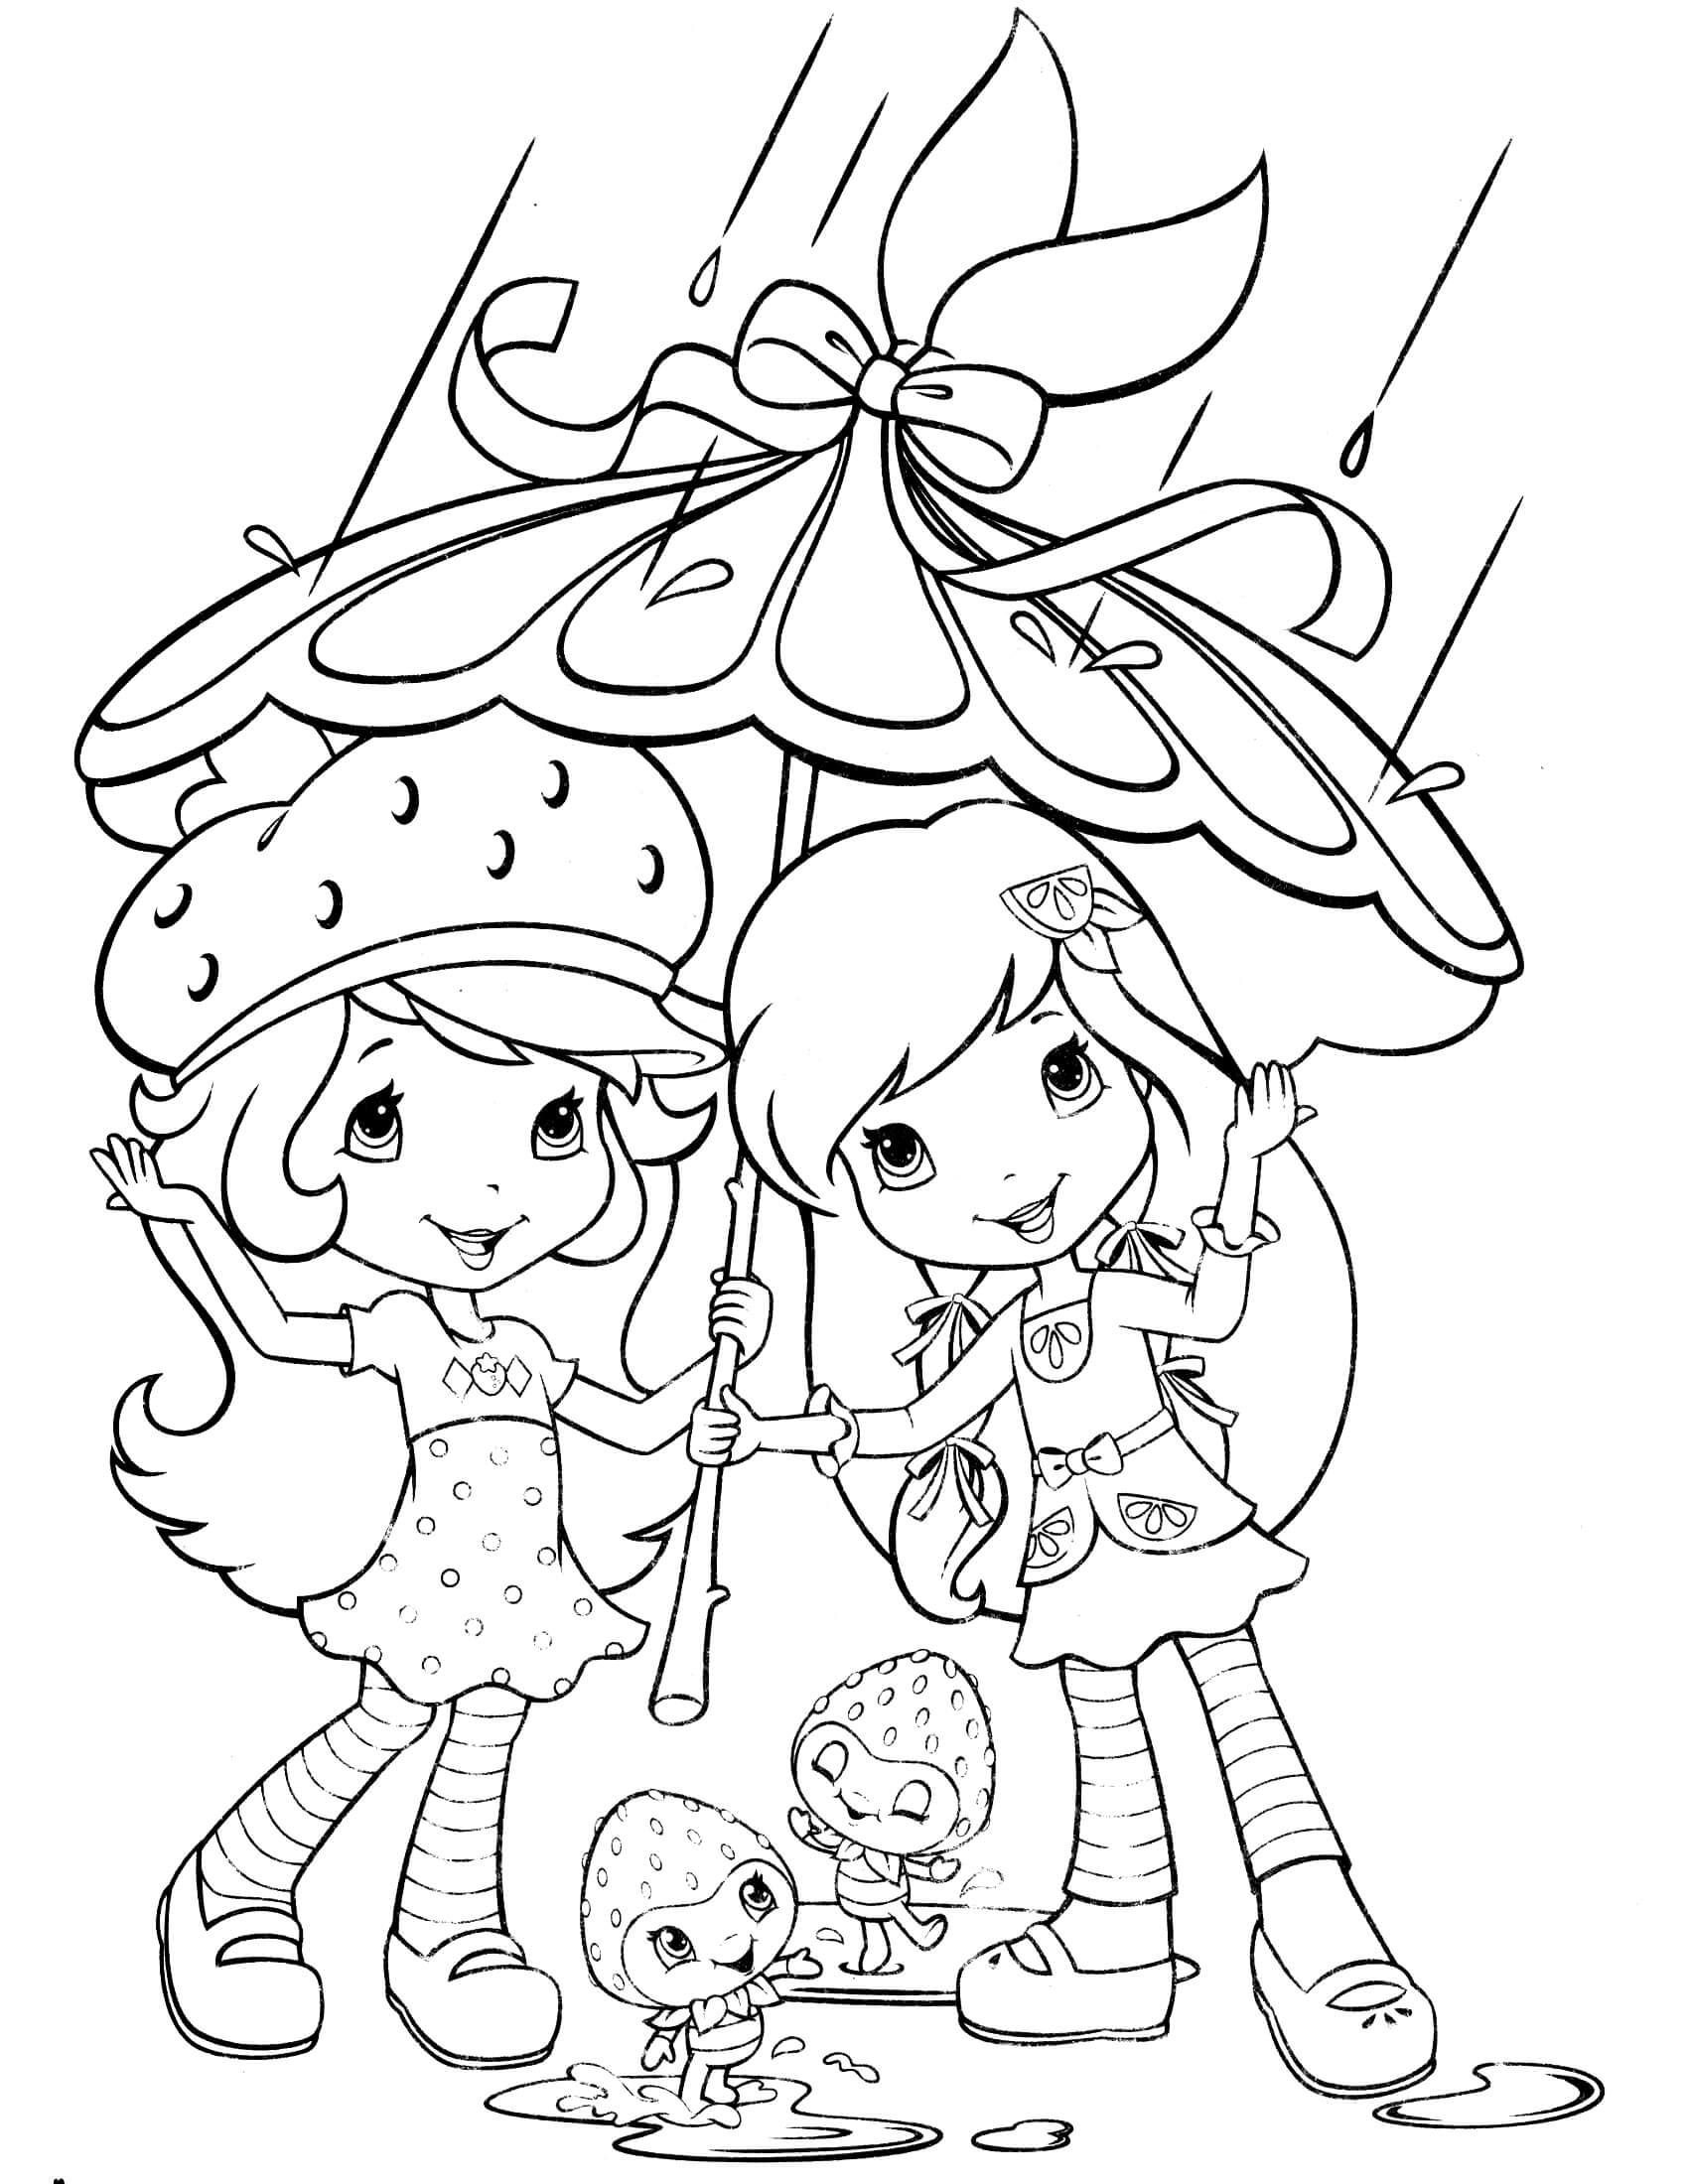 strawberry shortcake coloring games strawberry shortcake dibujos dibujos para colorear coloring games shortcake strawberry